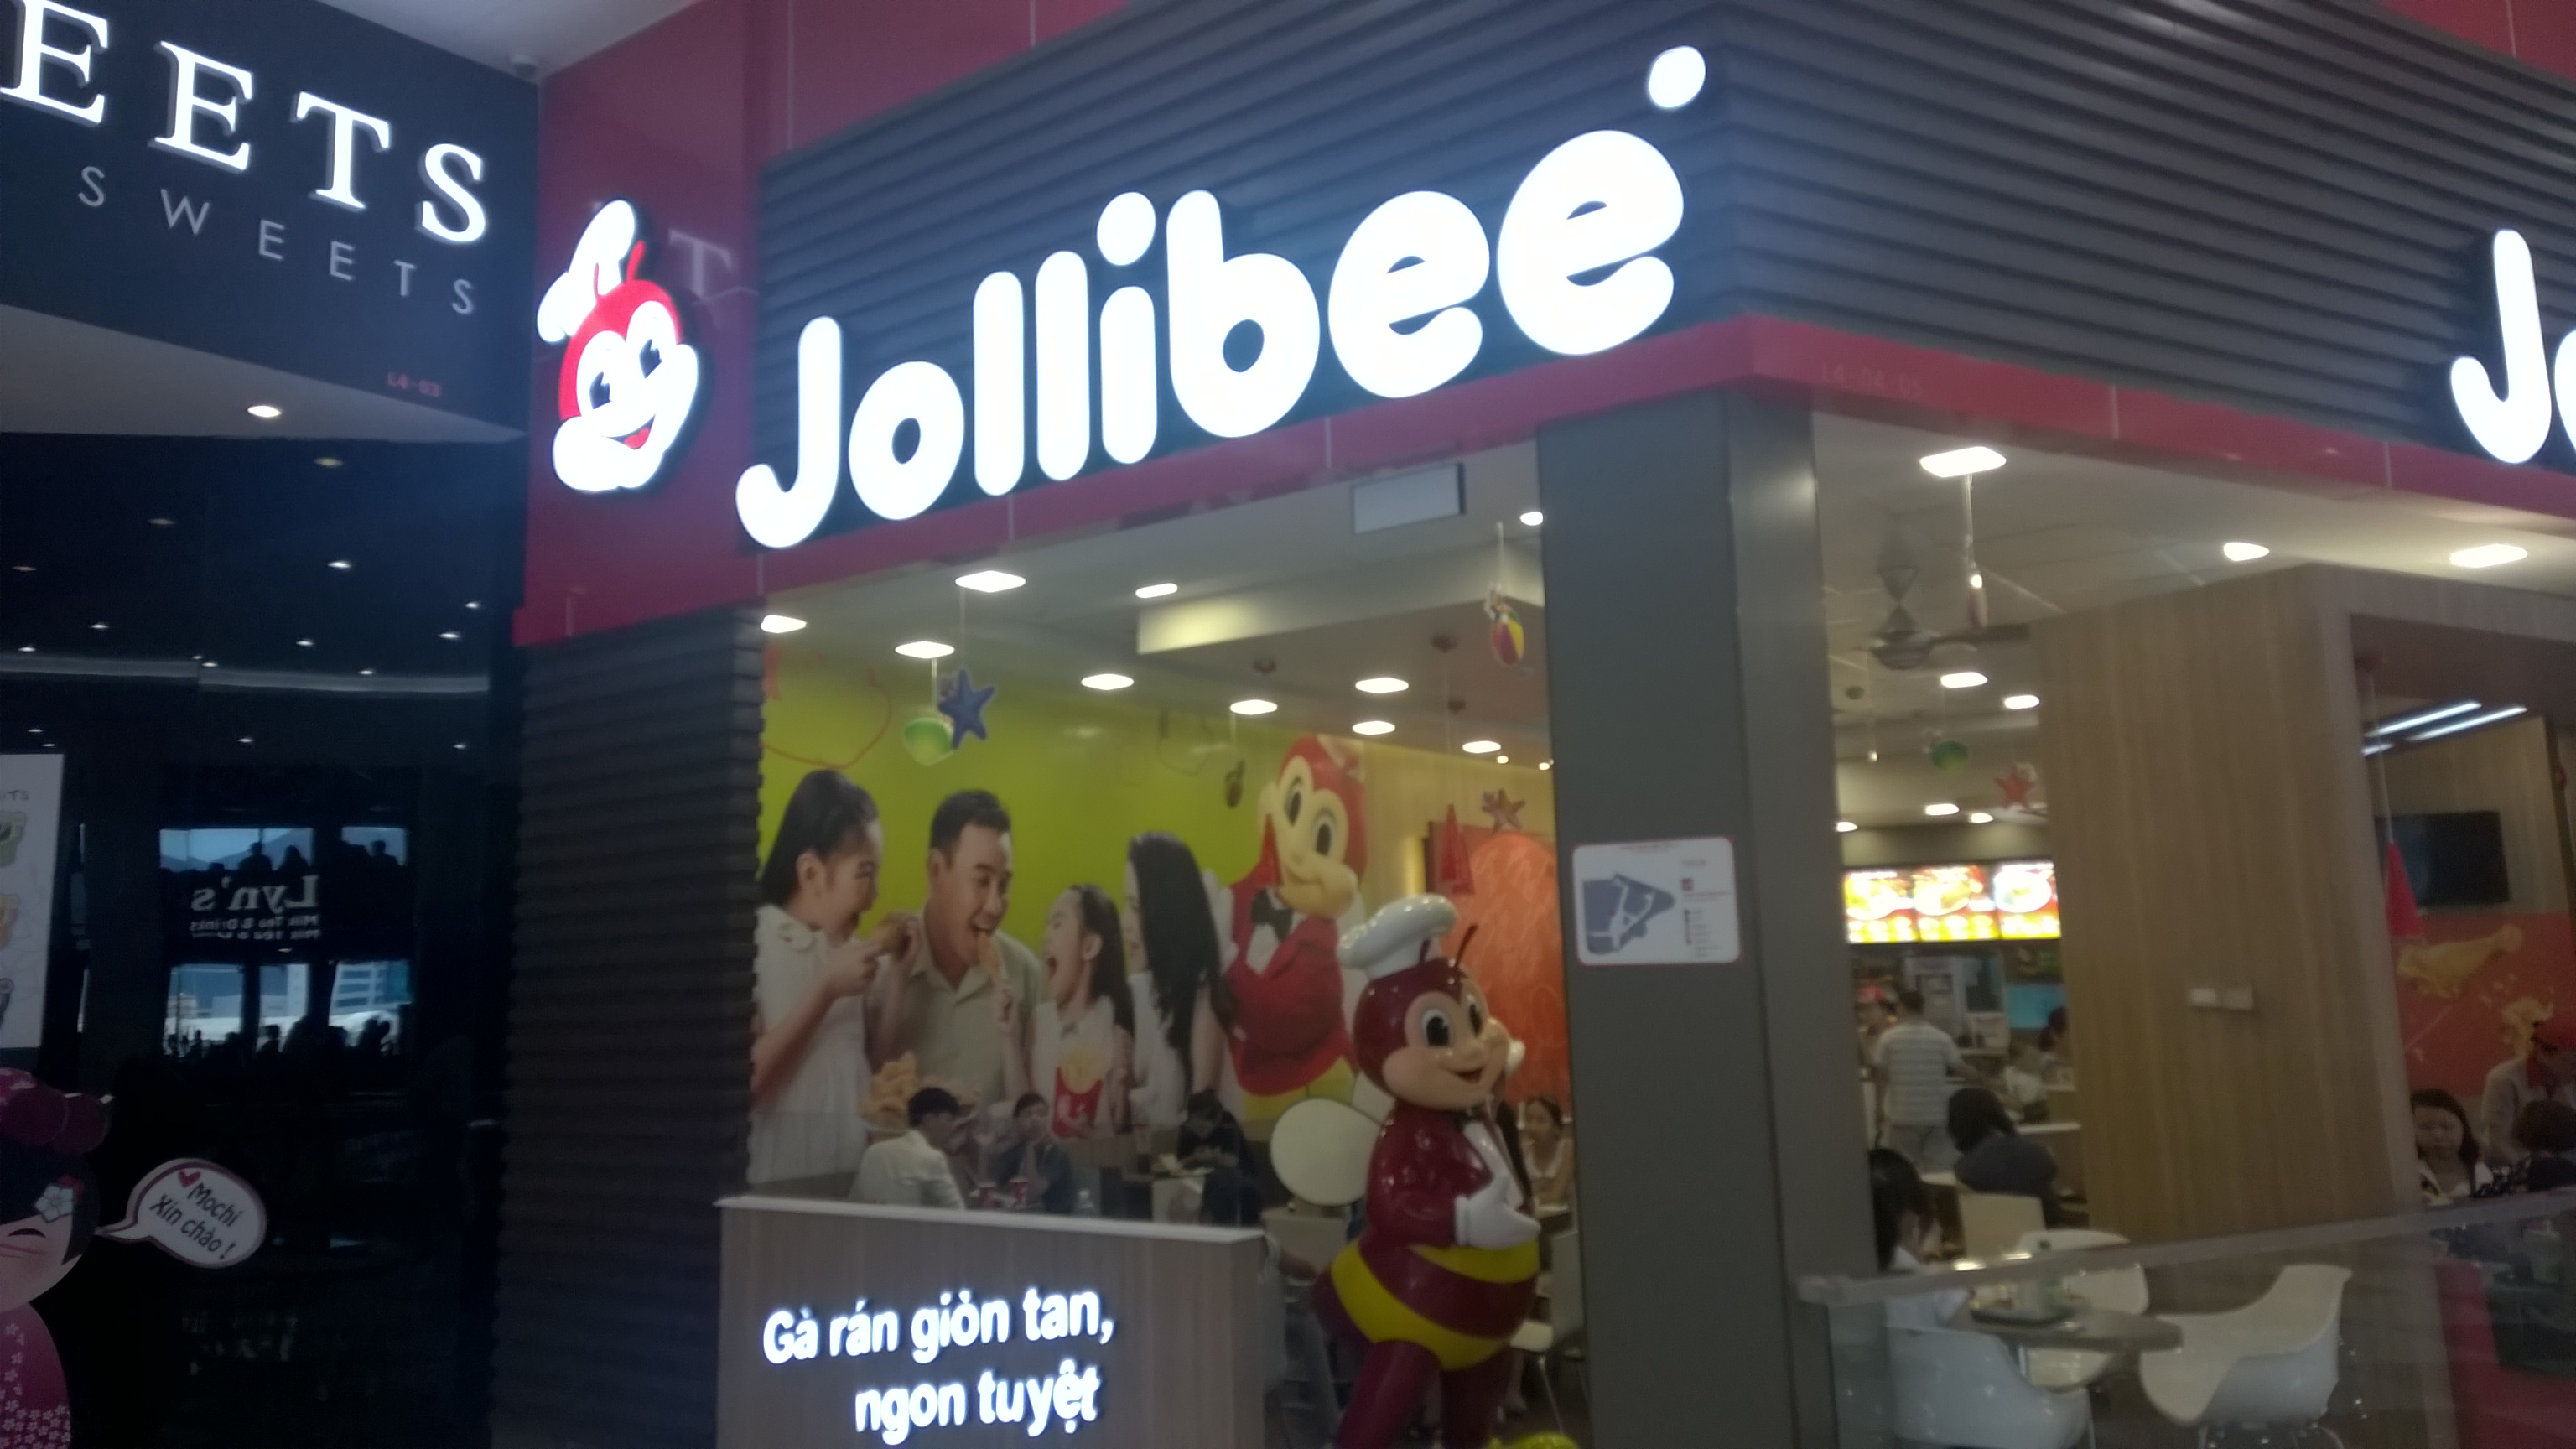 List of countries with Jollibee outlets - Wikiwand